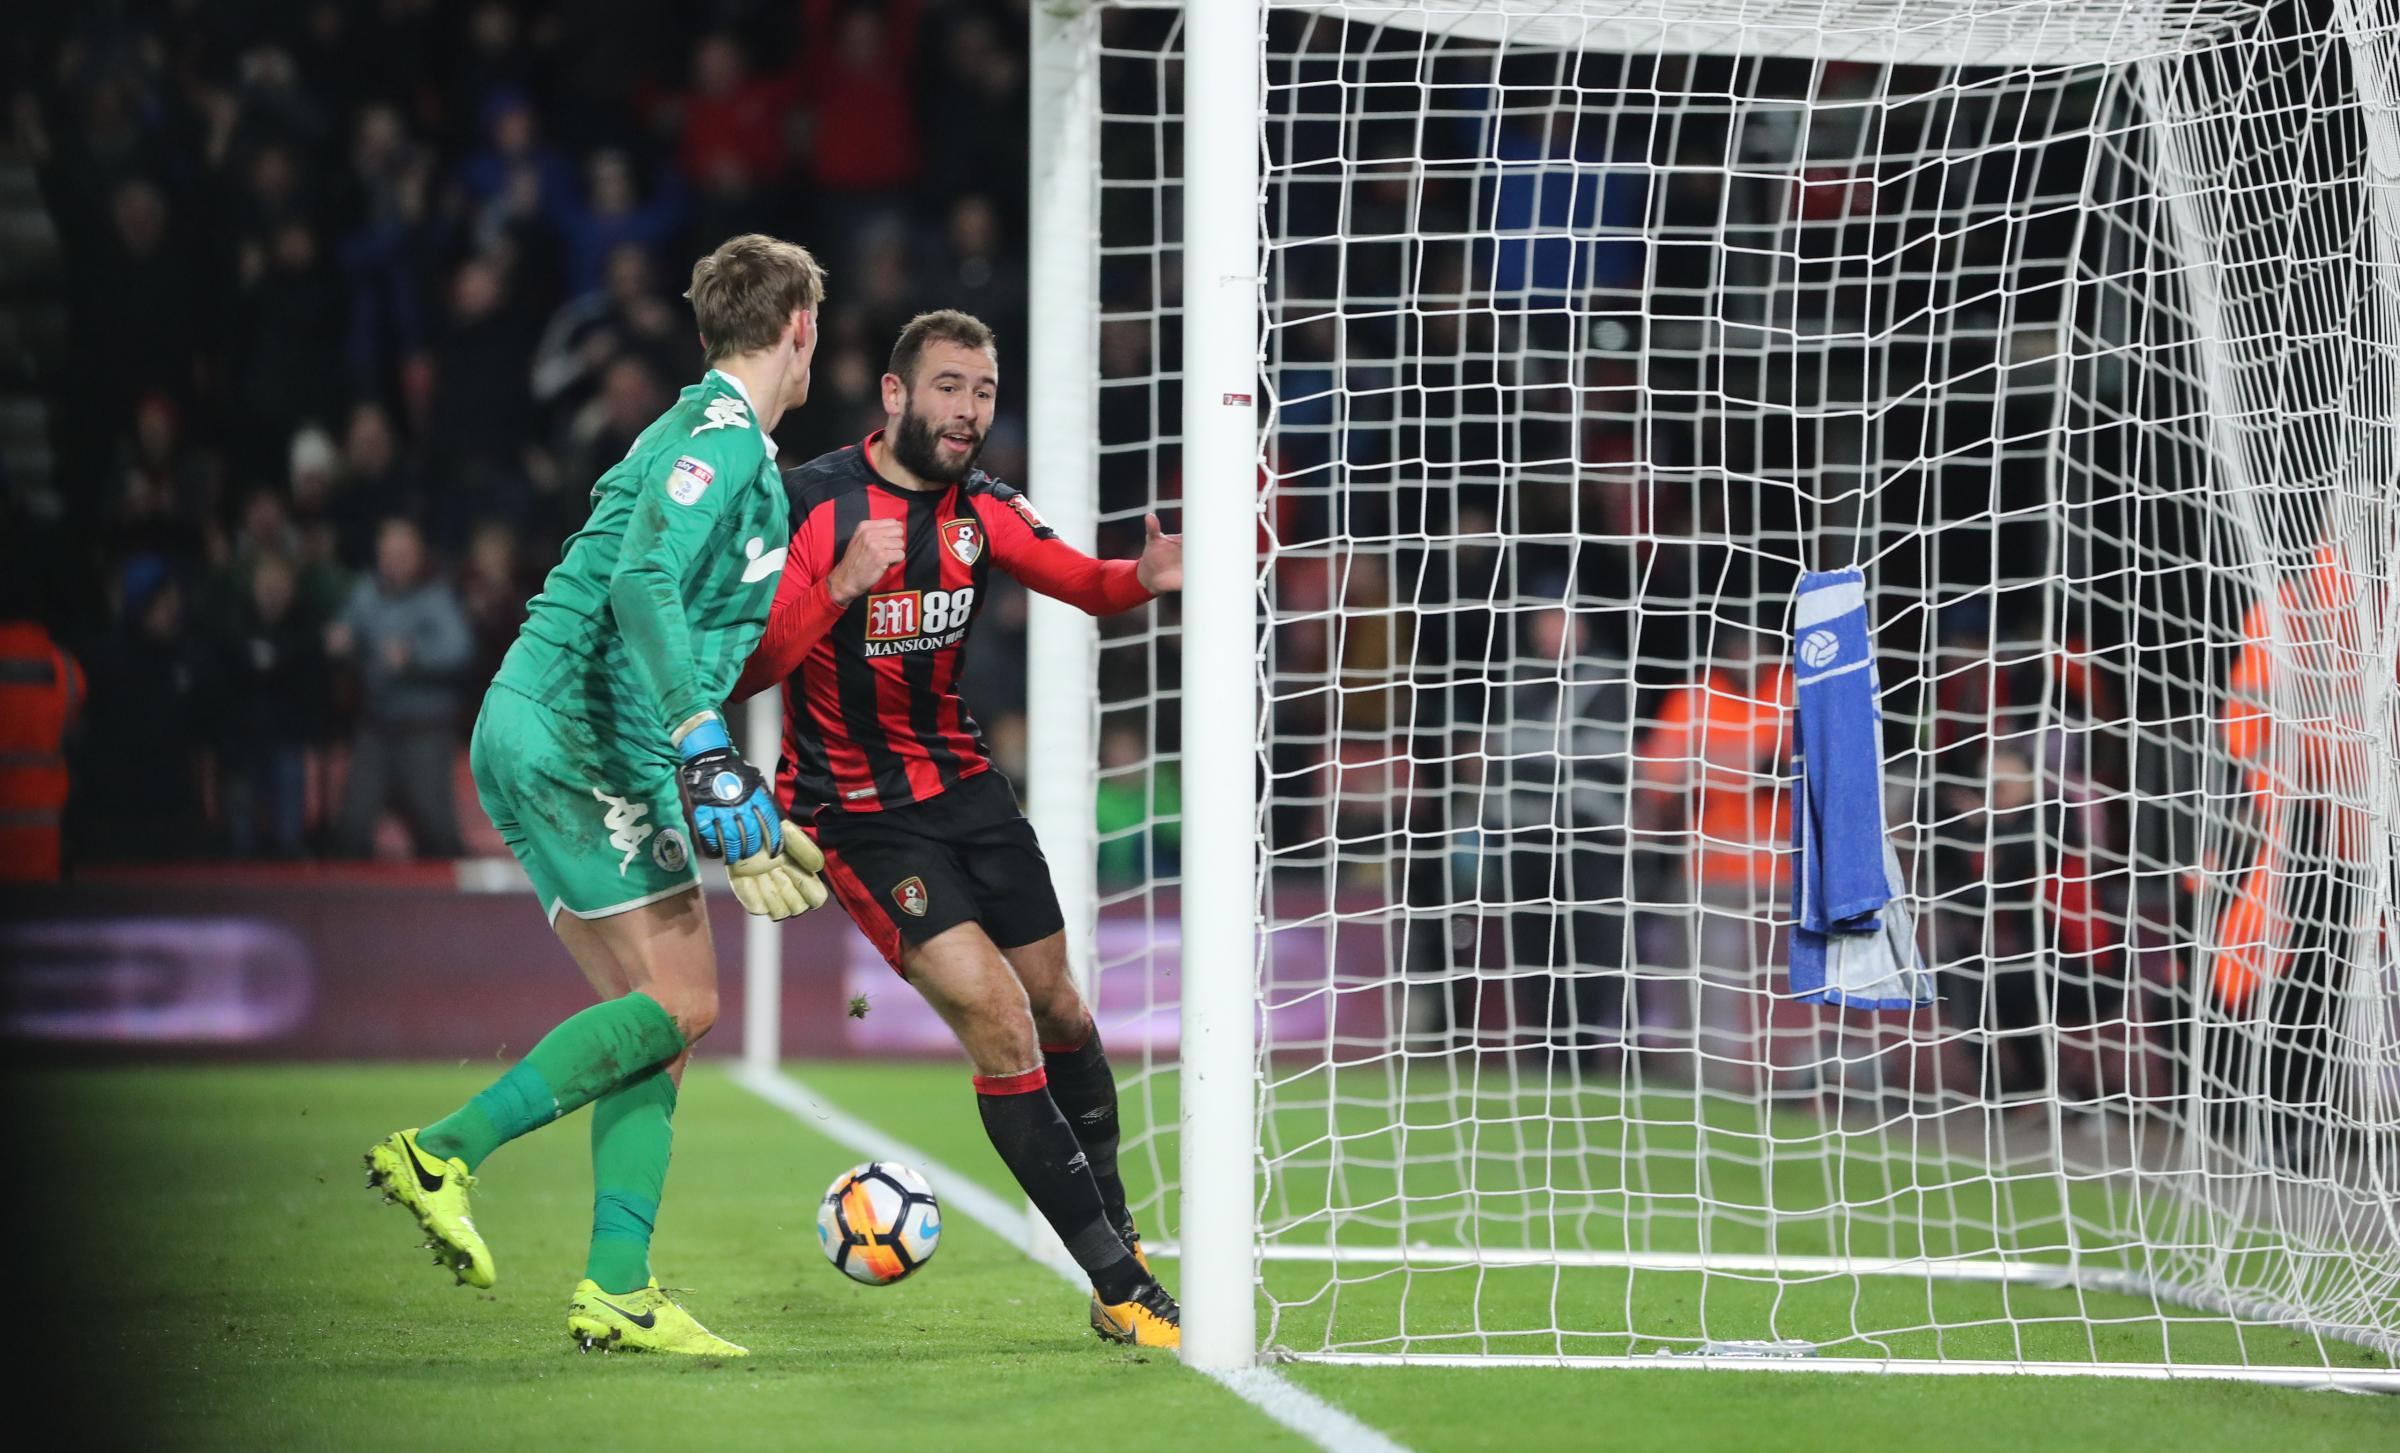 LEVELLER: Cherries' Steve Cook scored a late equaliser against Wigan